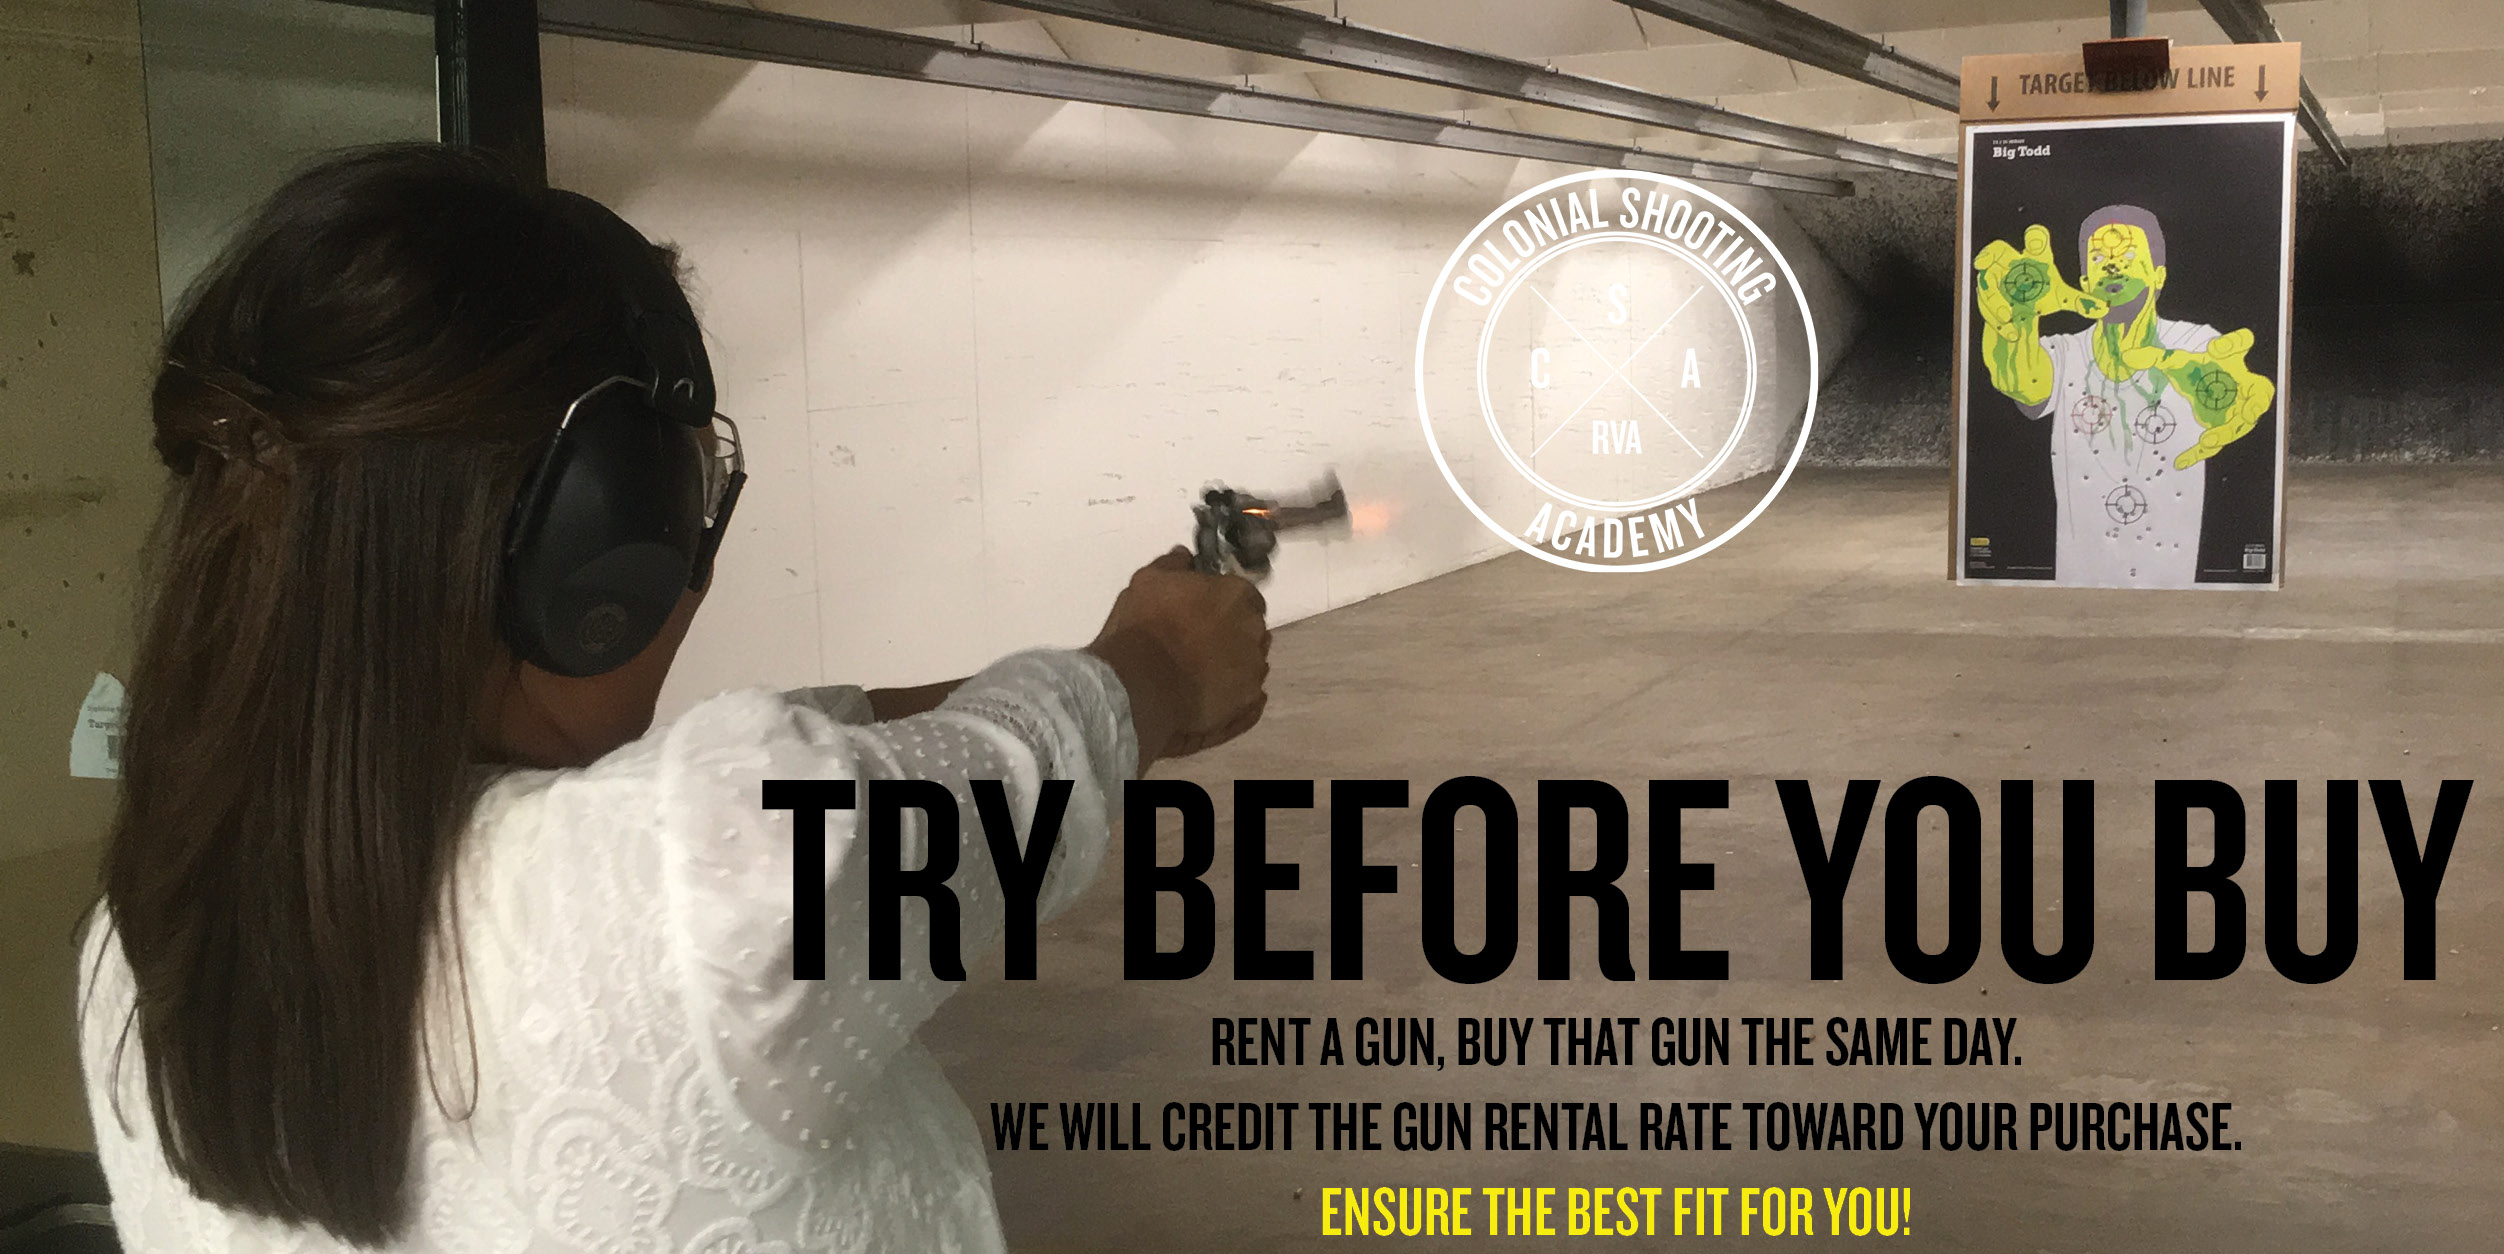 Try before you buy a gun, Shooting Range, Rent a gun, Colonial Shooting Academy, Richmond, VA, What gun should I buy